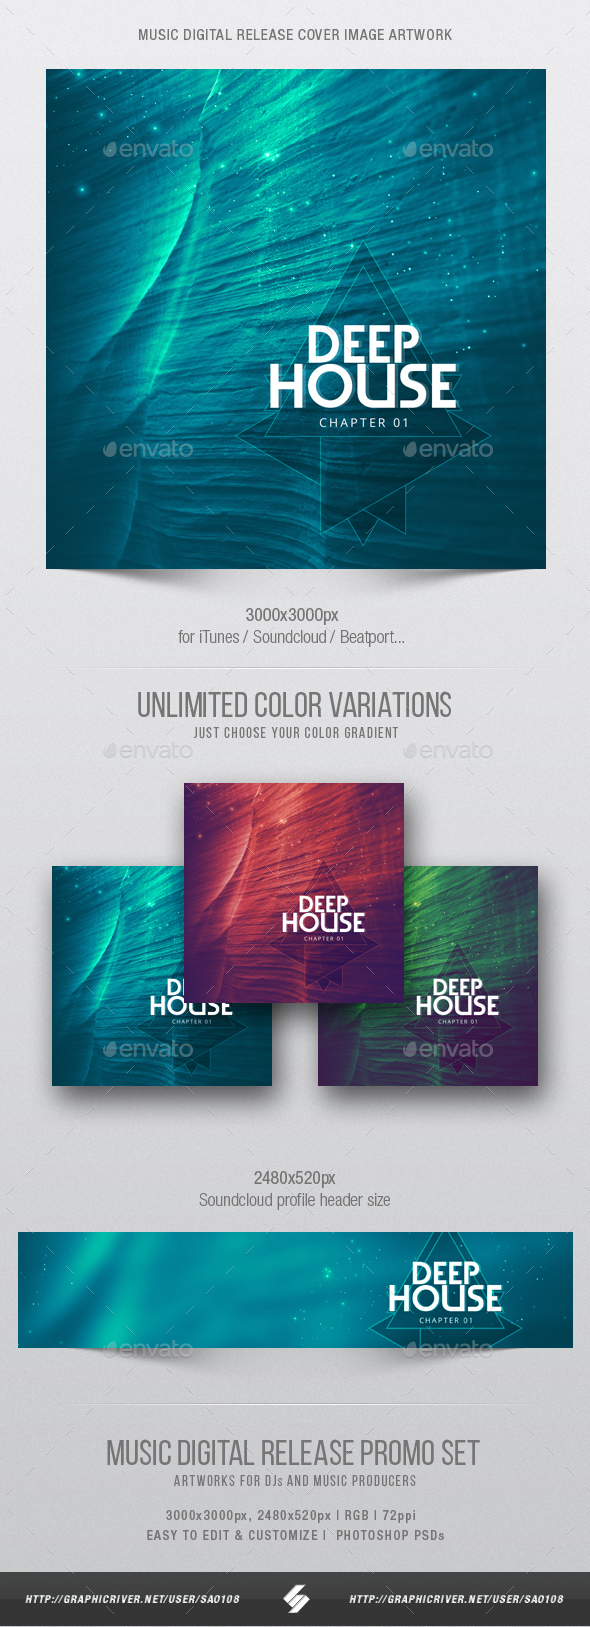 Deep House Chapter 1 - Music Cover Image Artwork Template - Miscellaneous Social Media